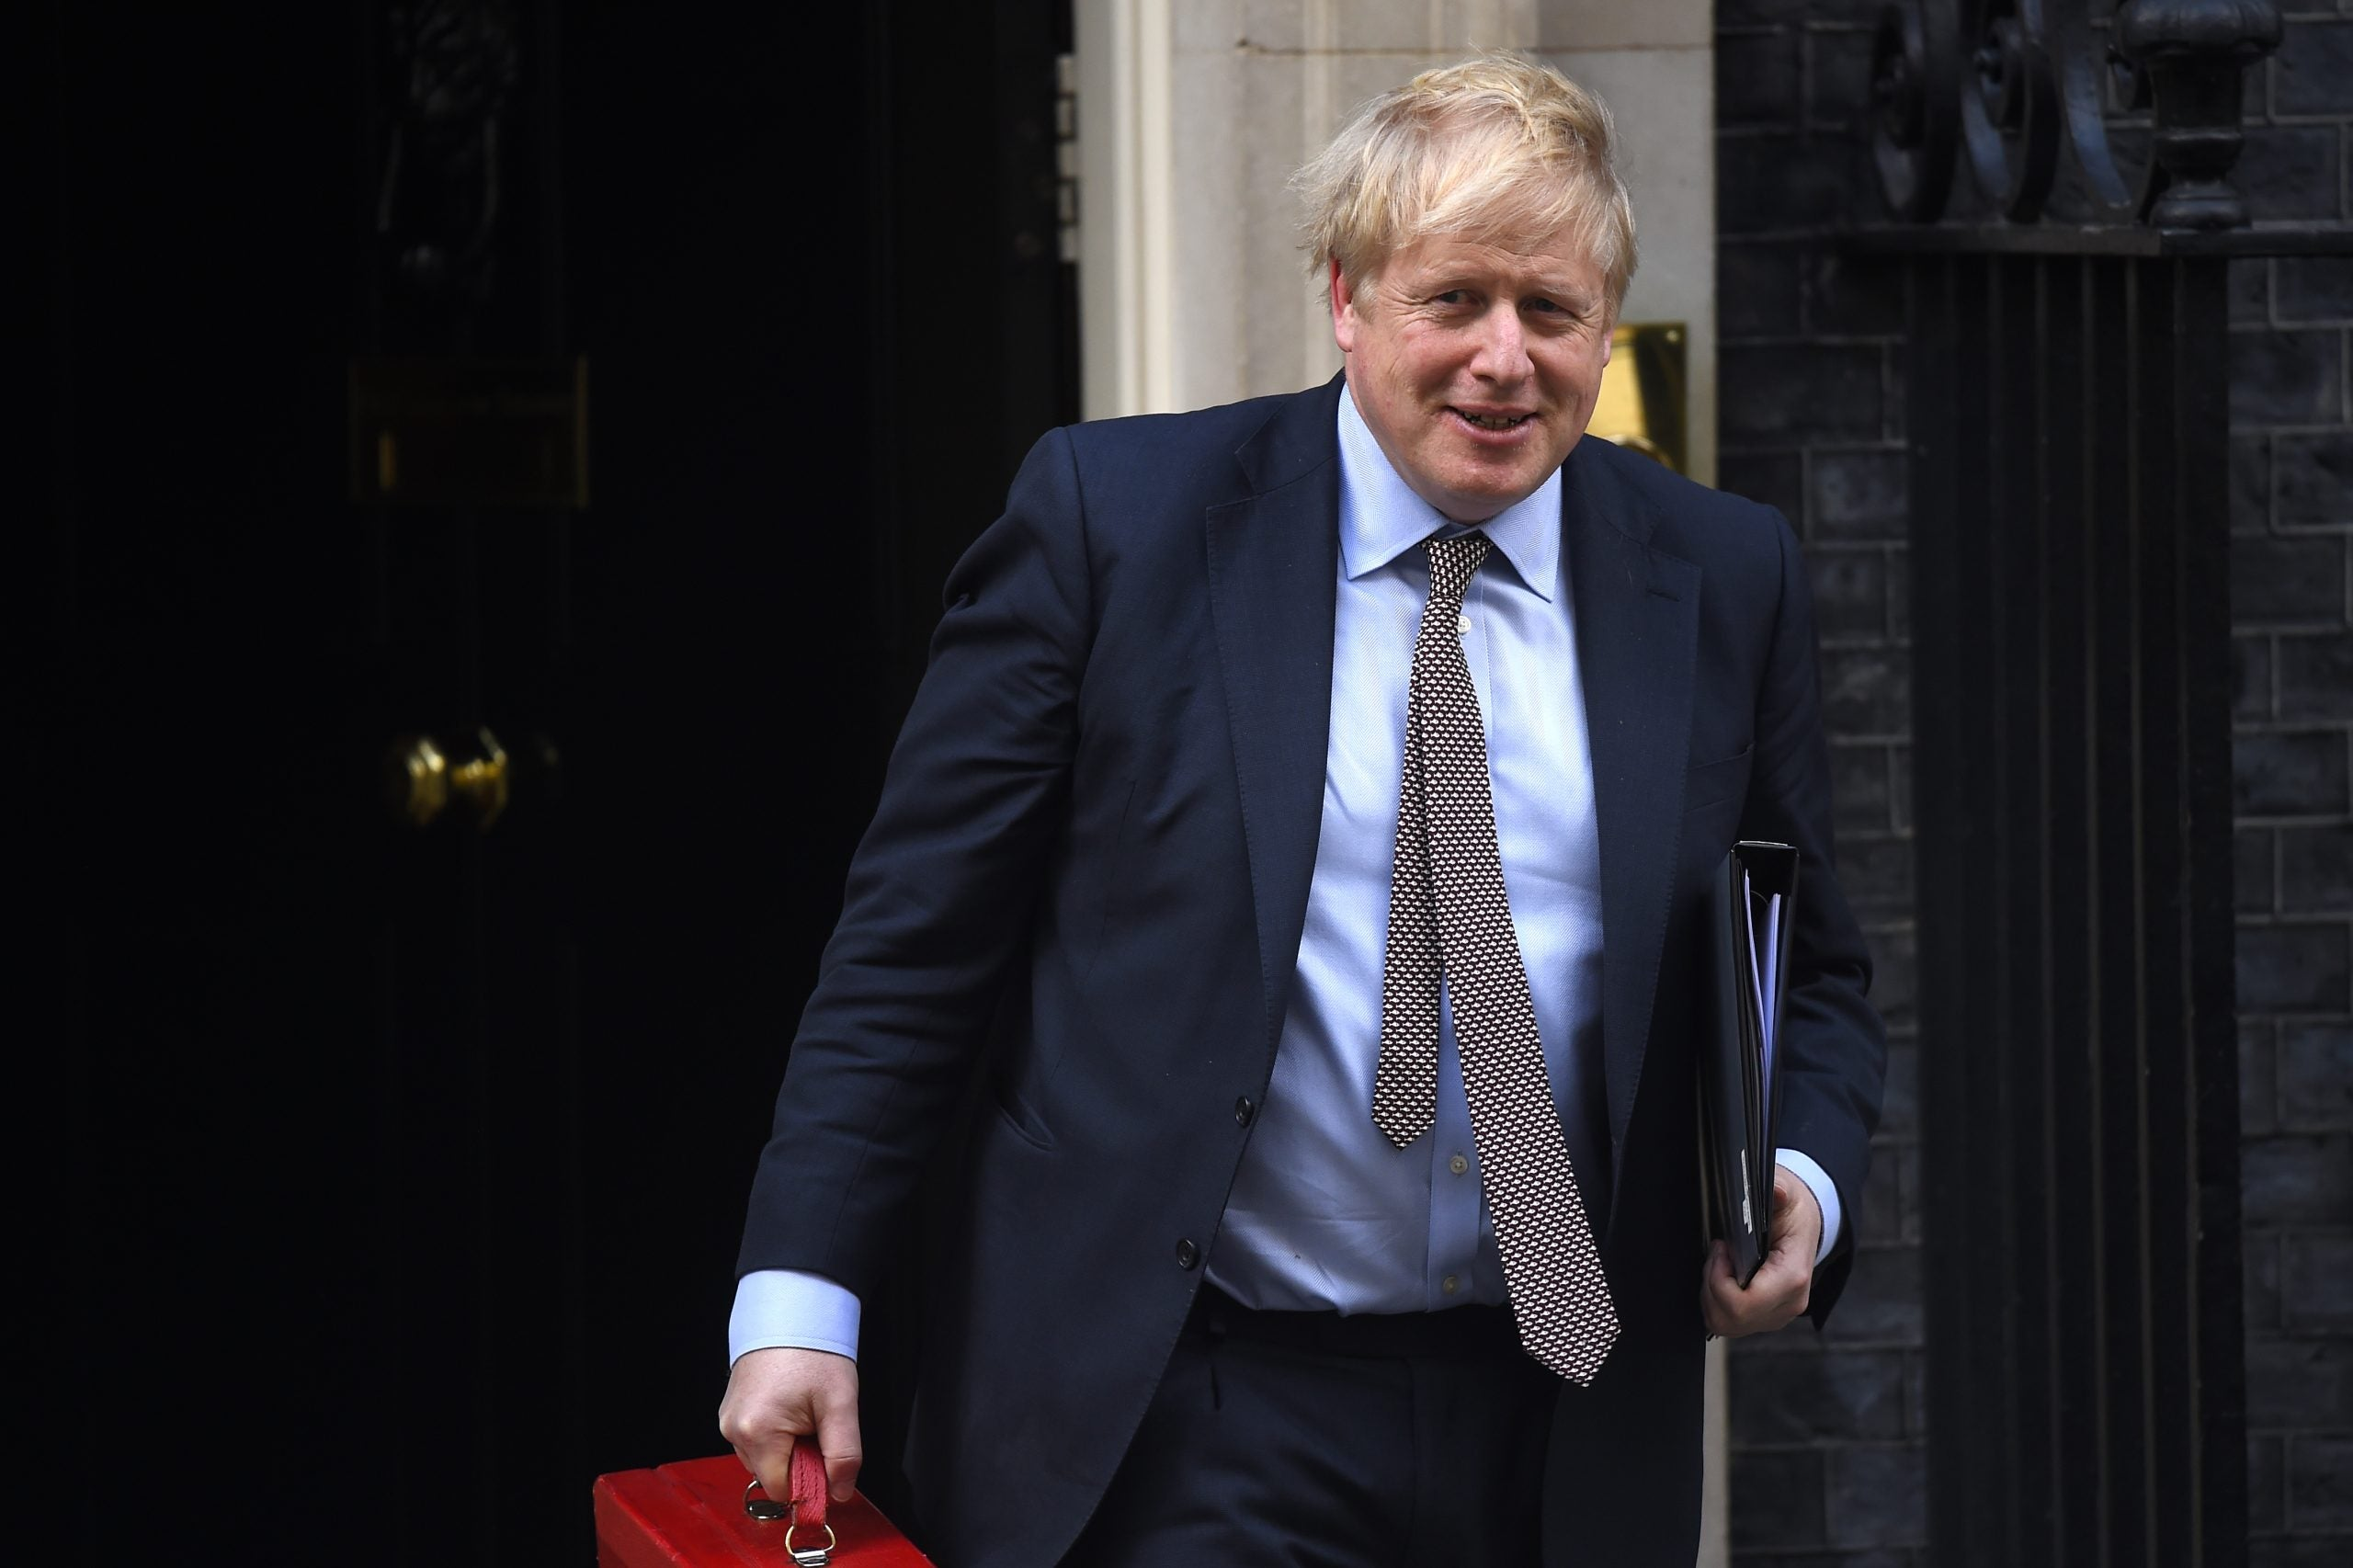 Boris Johnson does have a vision but is misunderstood